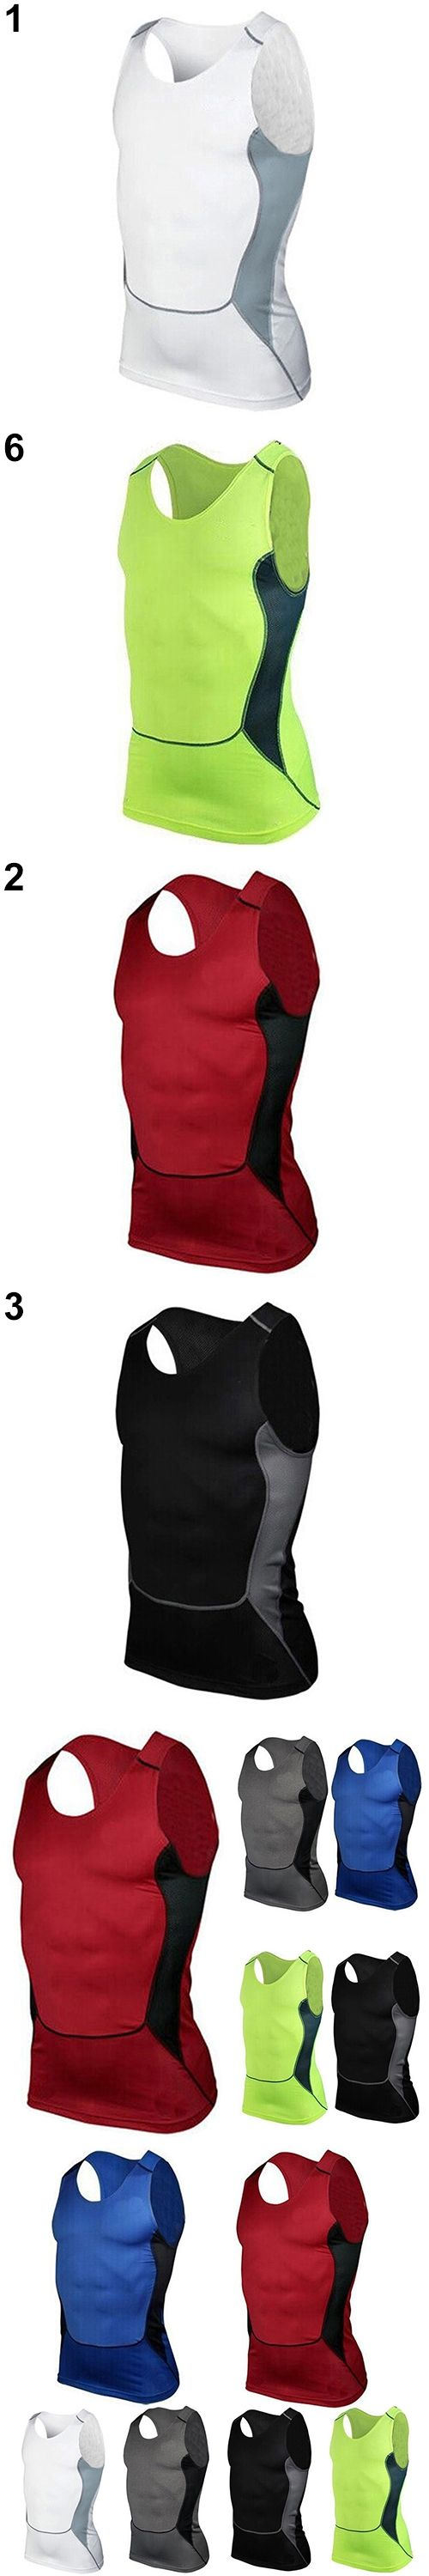 New Arrival Men's Compression Sleeveless Tight Shirts  Base Layer Vest Tank Top